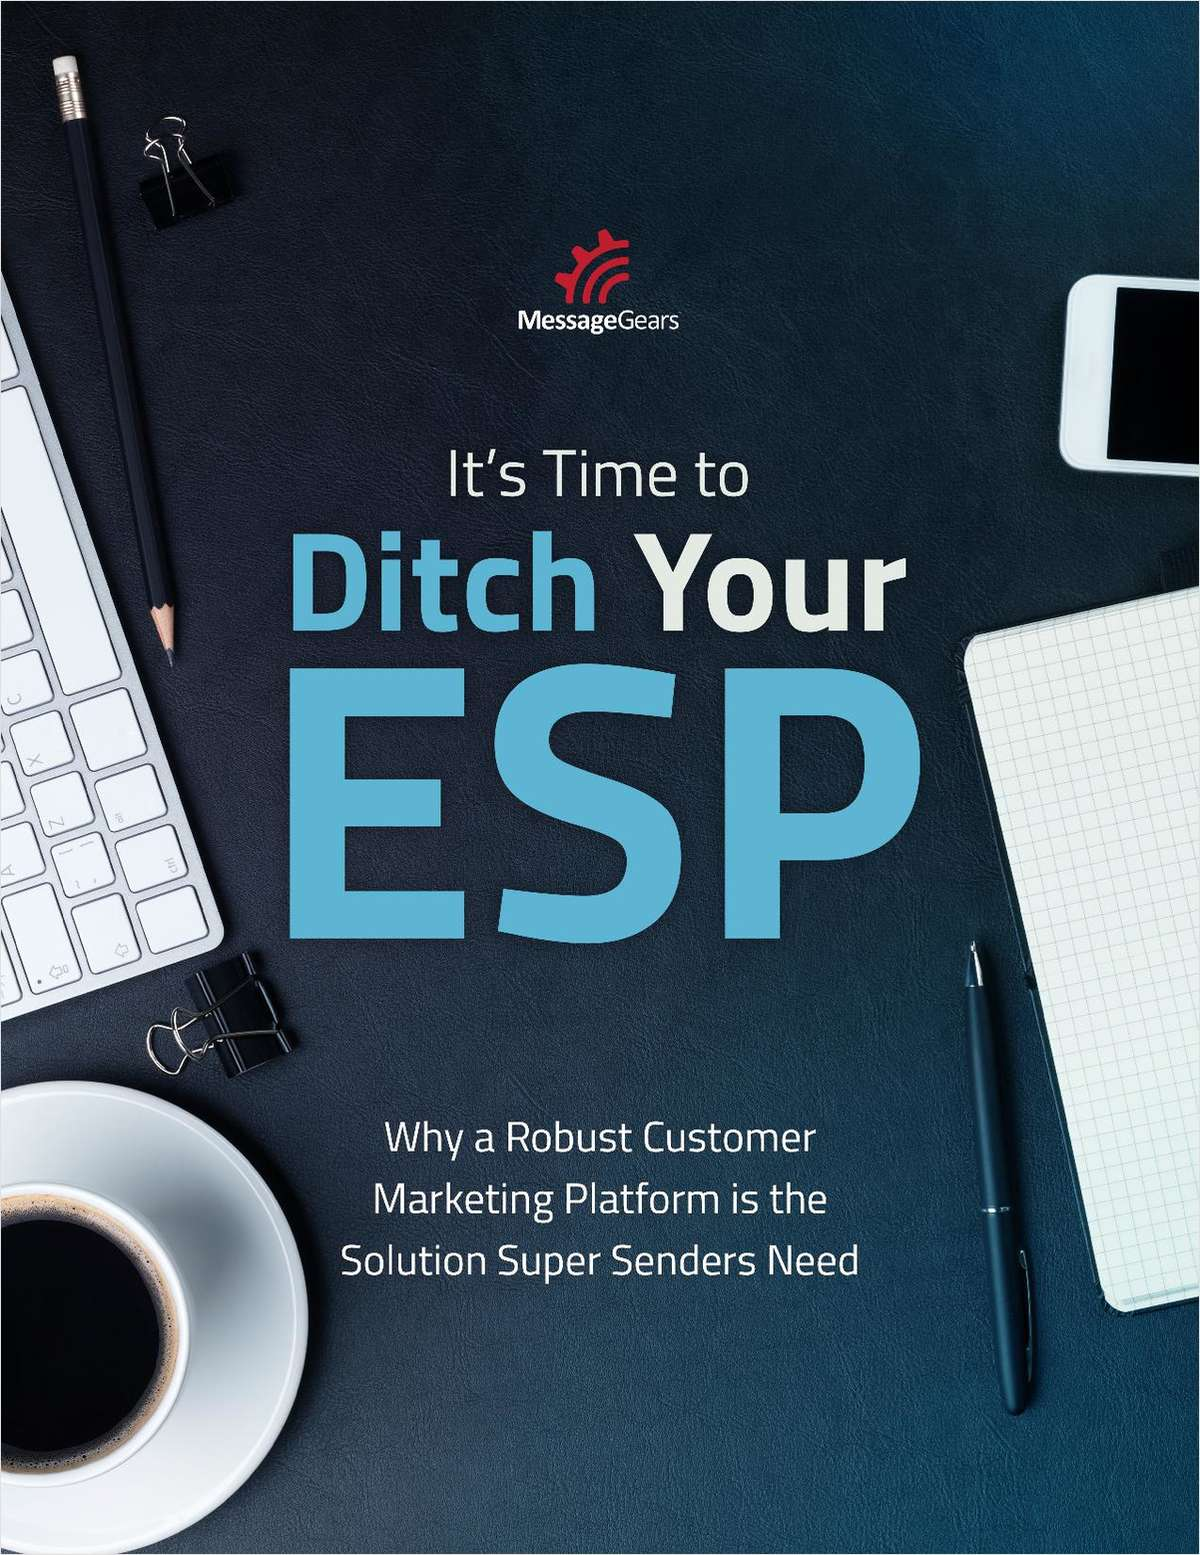 It's Time to Ditch Your Email Service Provider: Why a Robust Customer Marketing Platform is the Solution Super Senders Need